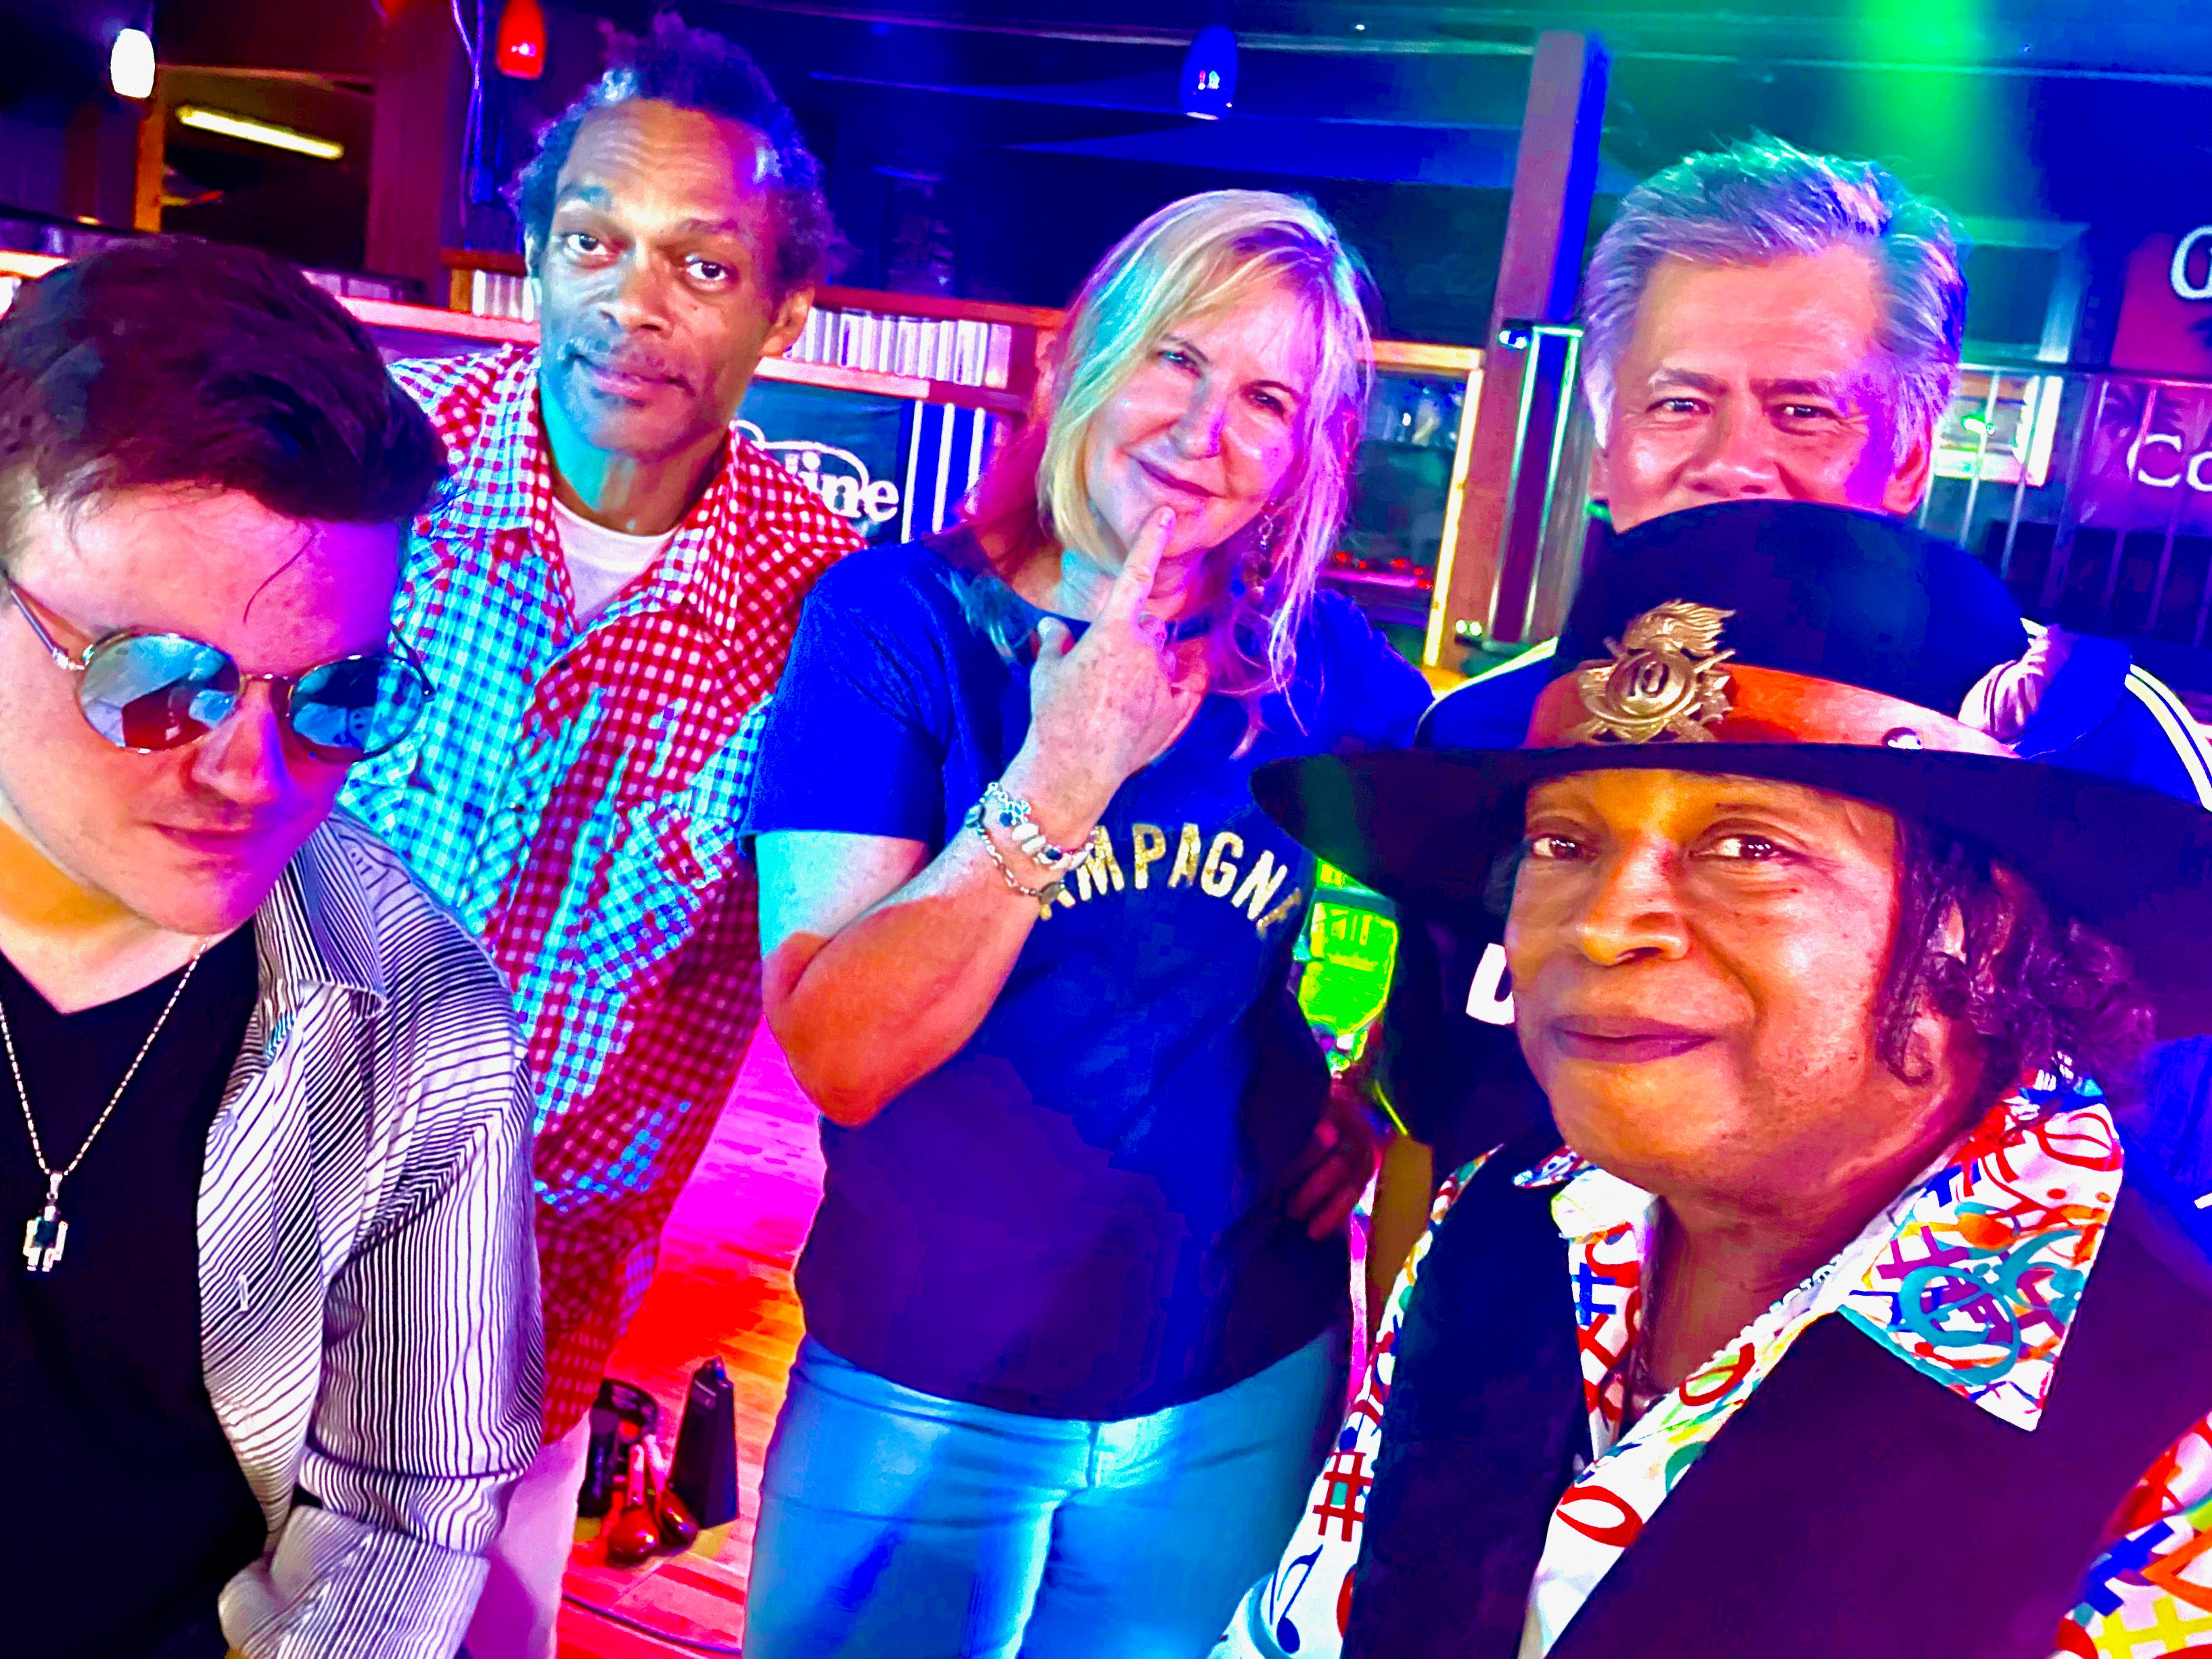 Live music in Gainesville and Alachua County for Sept. 10-16, 2021